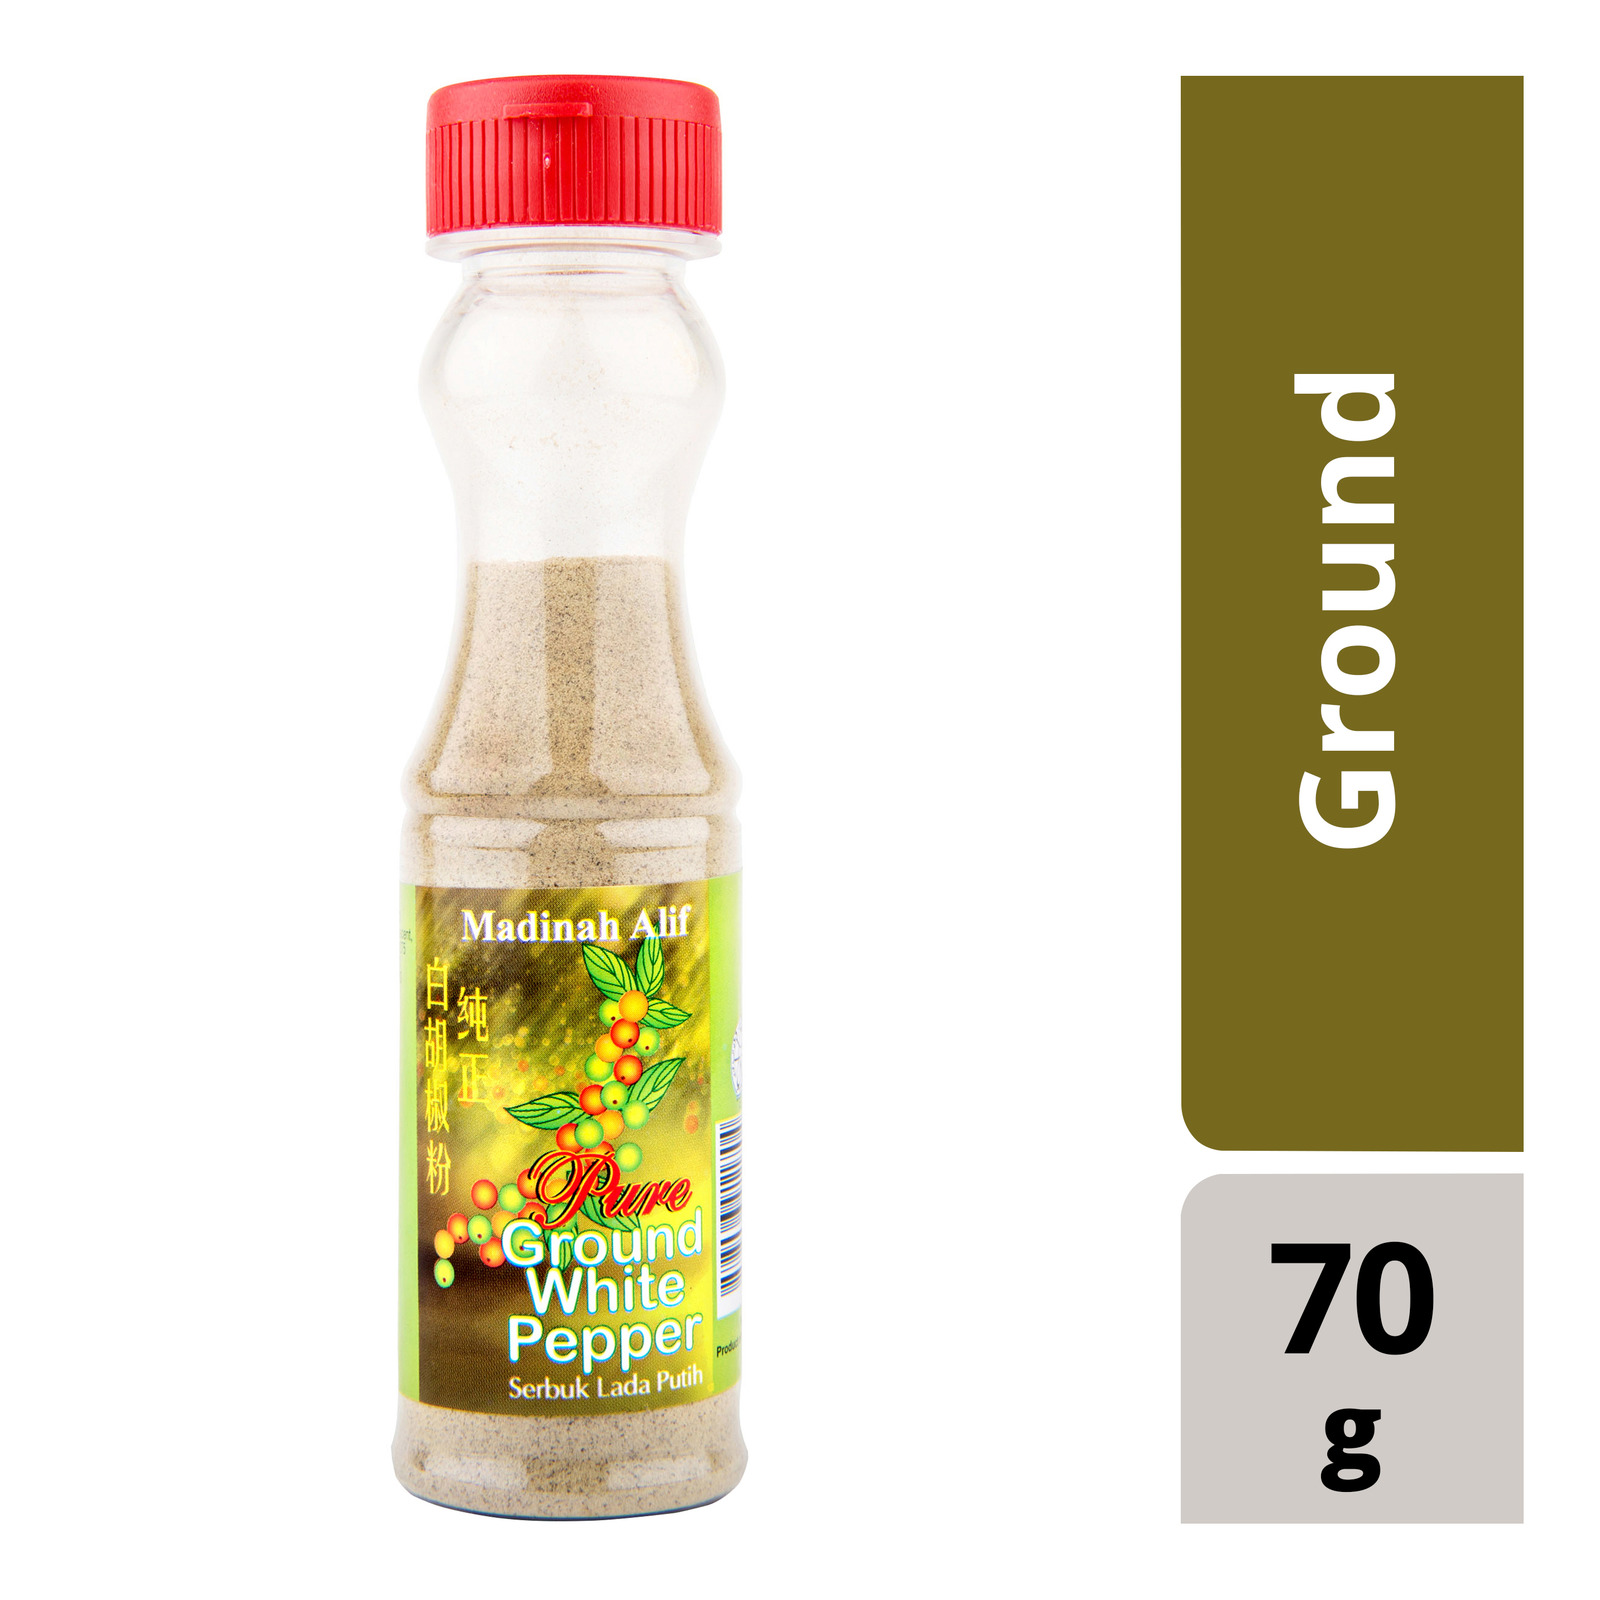 Madinah Alif Pure White Pepper - Ground